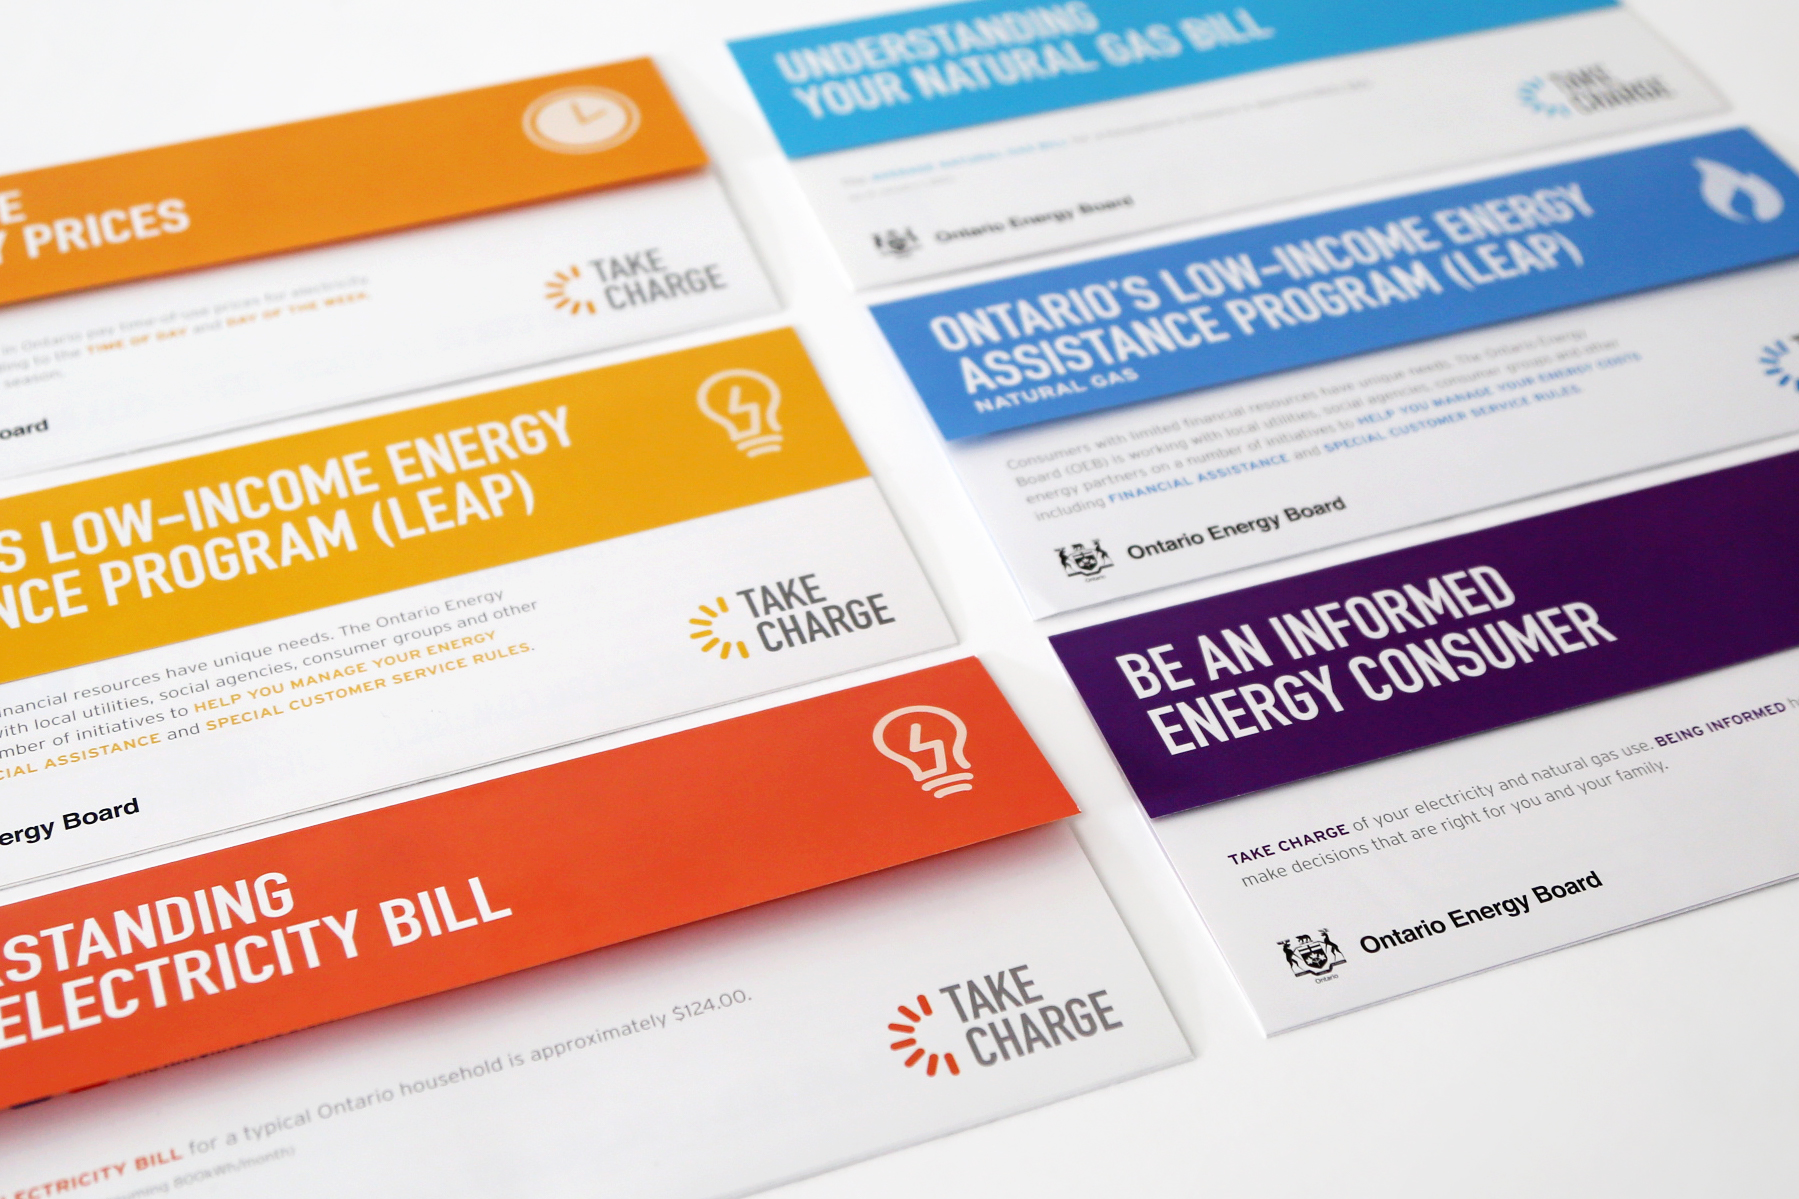 Ontario Energy Board - Take Charge